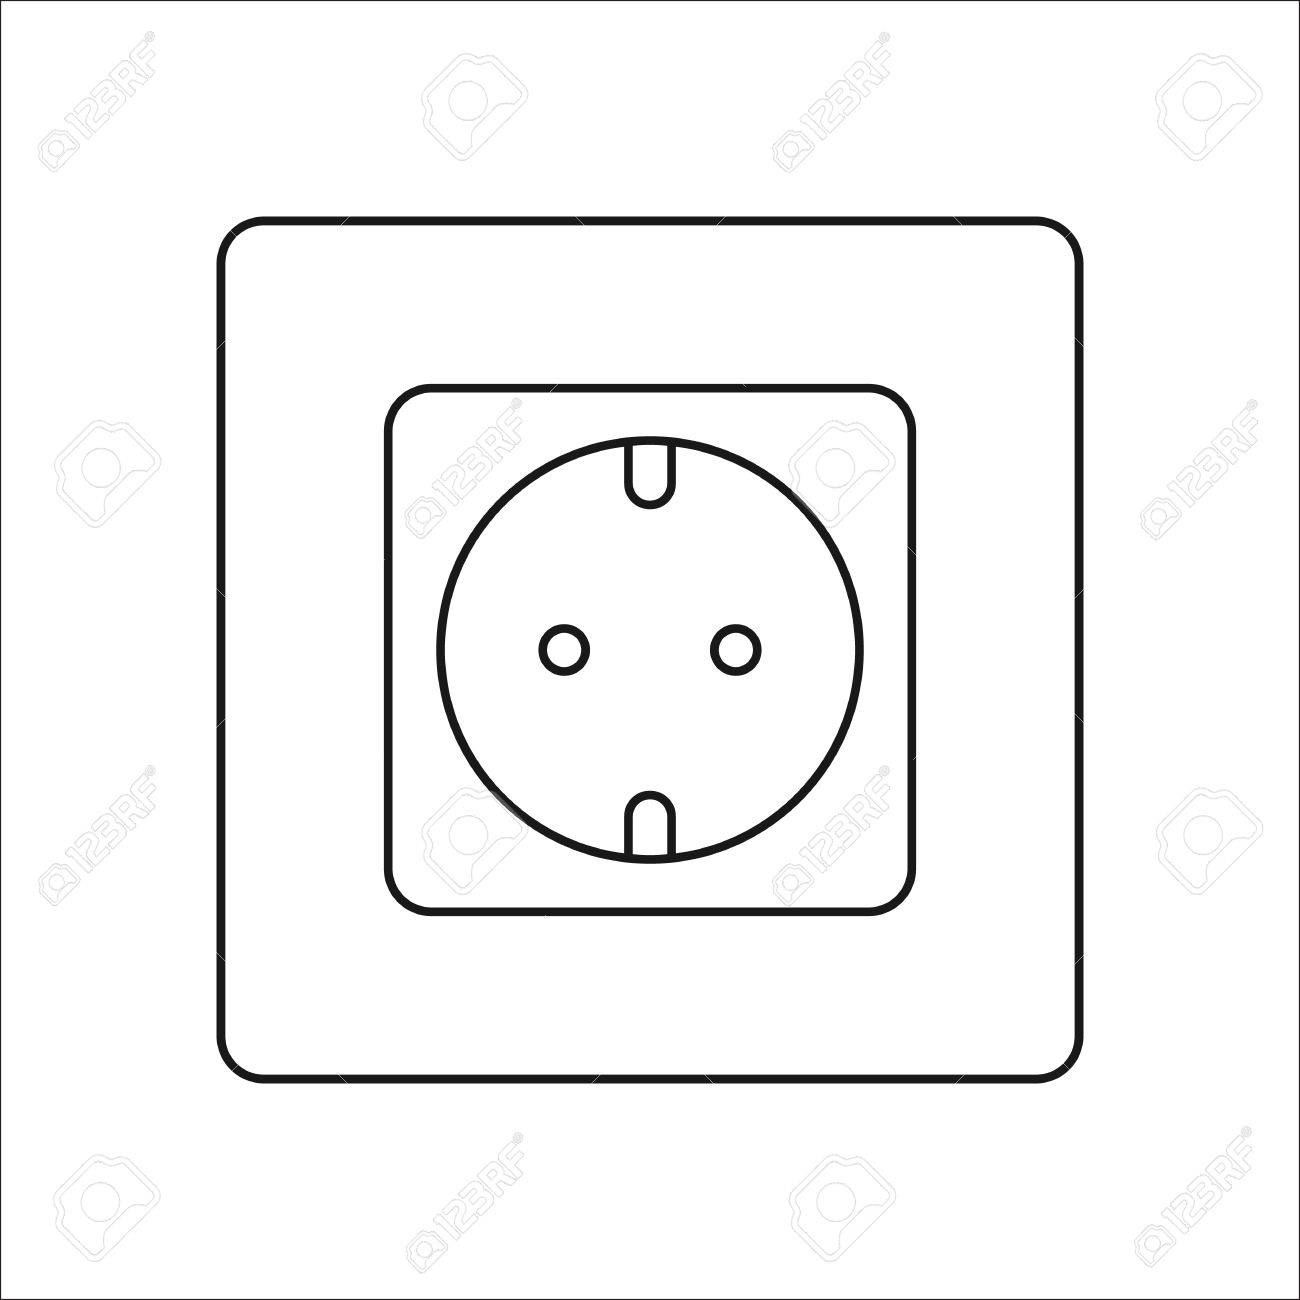 Power Socket Symbol Sign Line Icon On Background Royalty Free